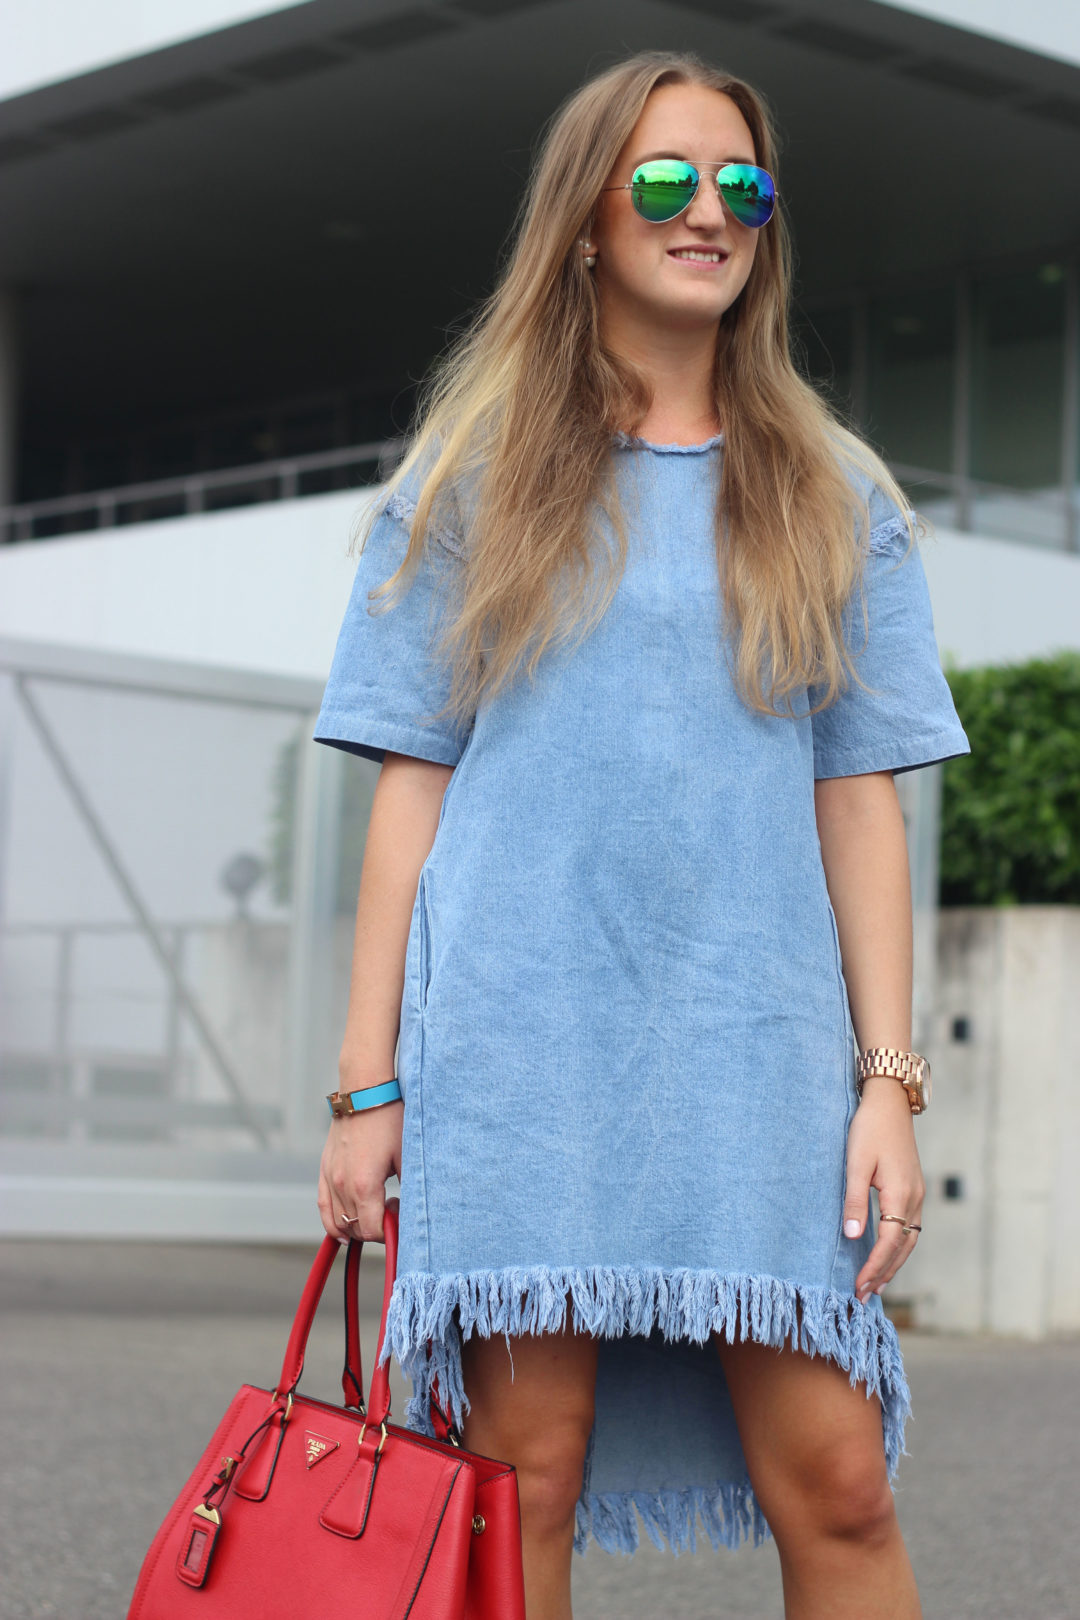 All about denim: denim is everywhere...therefore, every fashionista updated her closet with new denim pieces - like me too. I got my first jeans dress...@wmbg